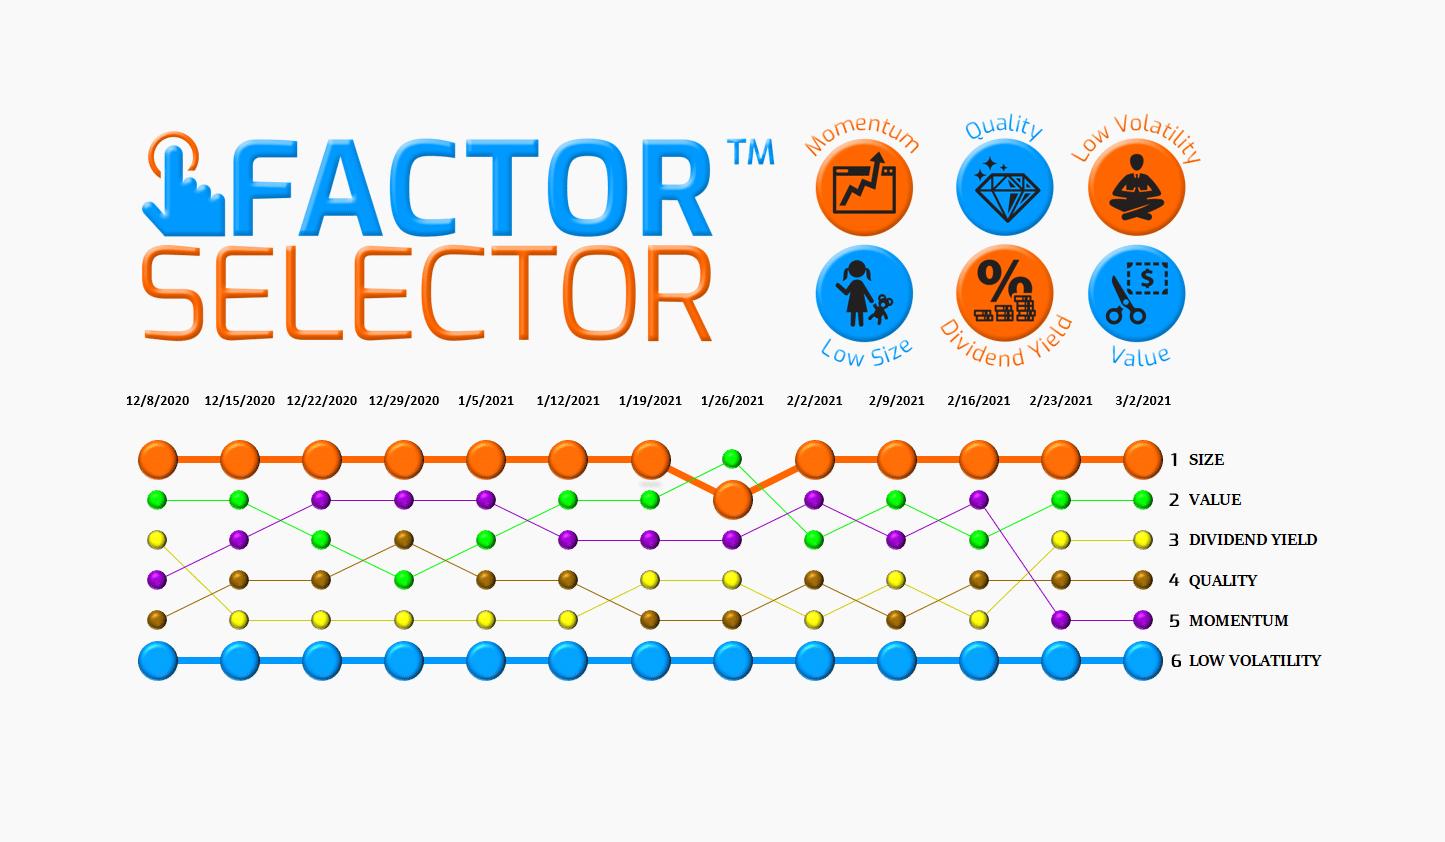 Factor Selector™  – 03/03/21 via @https://www.pinterest.com/market_scholars